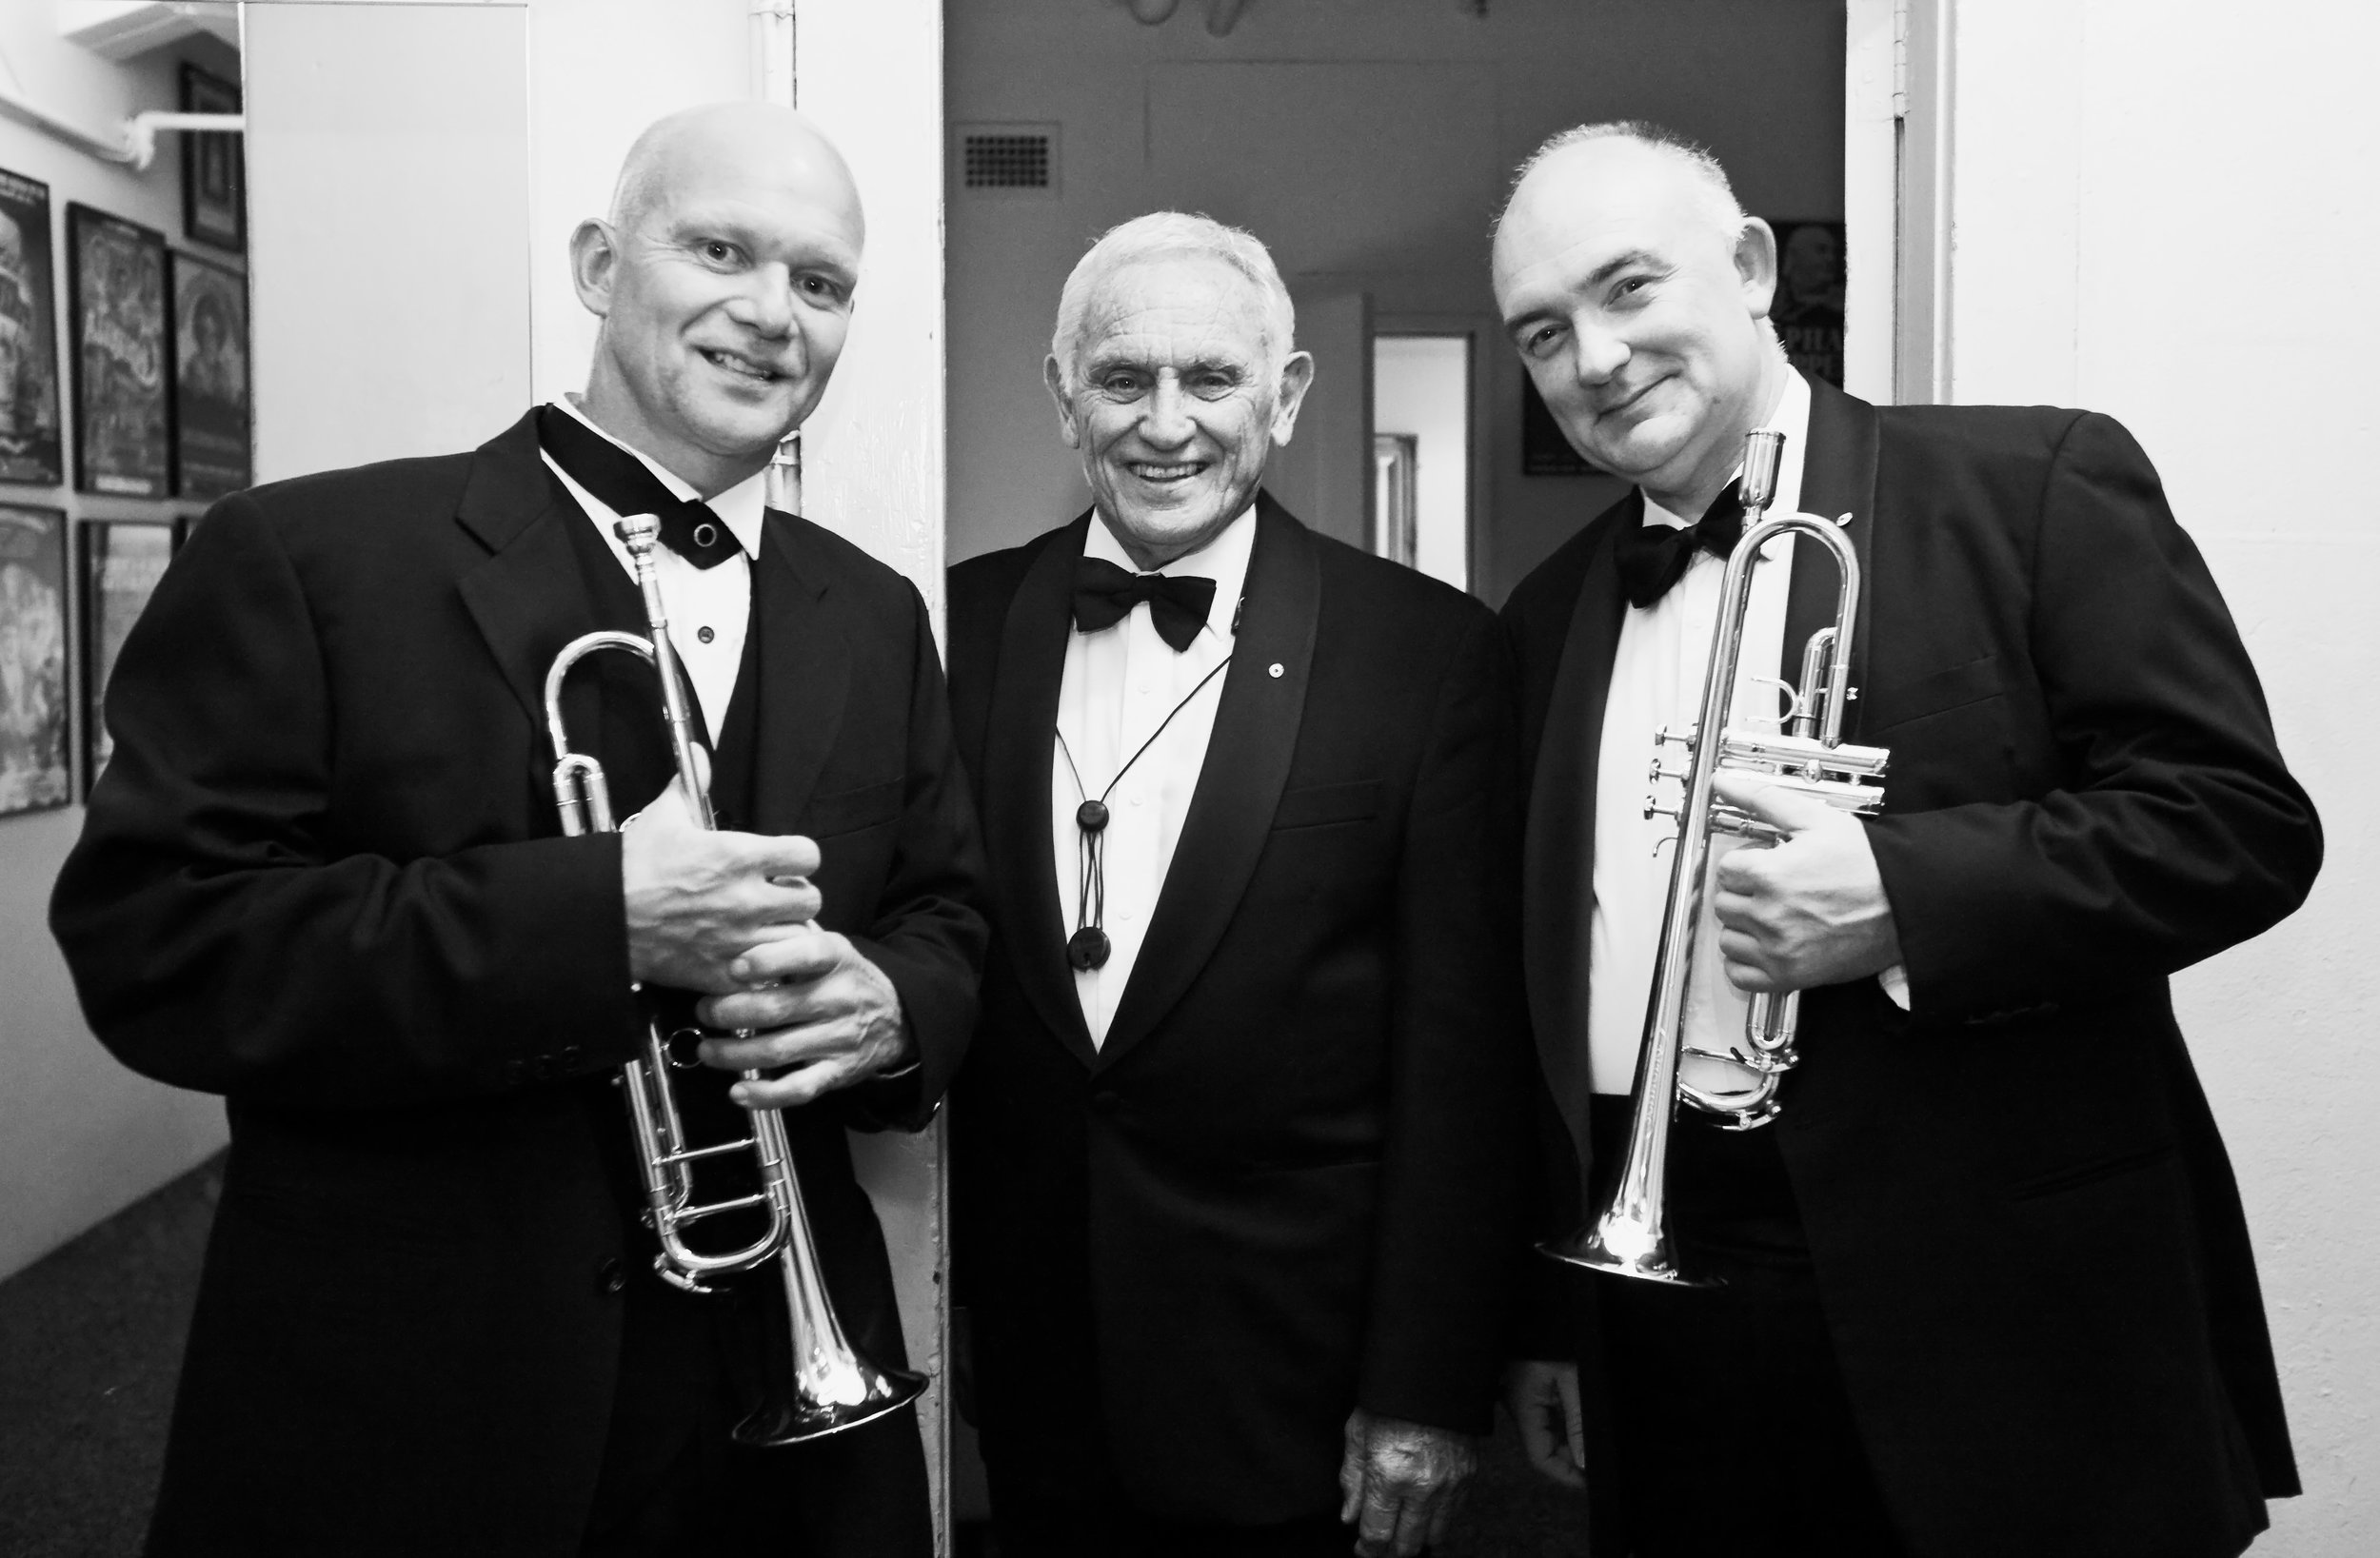 Ralph pictured (left) with Don Burrows and James Morrison